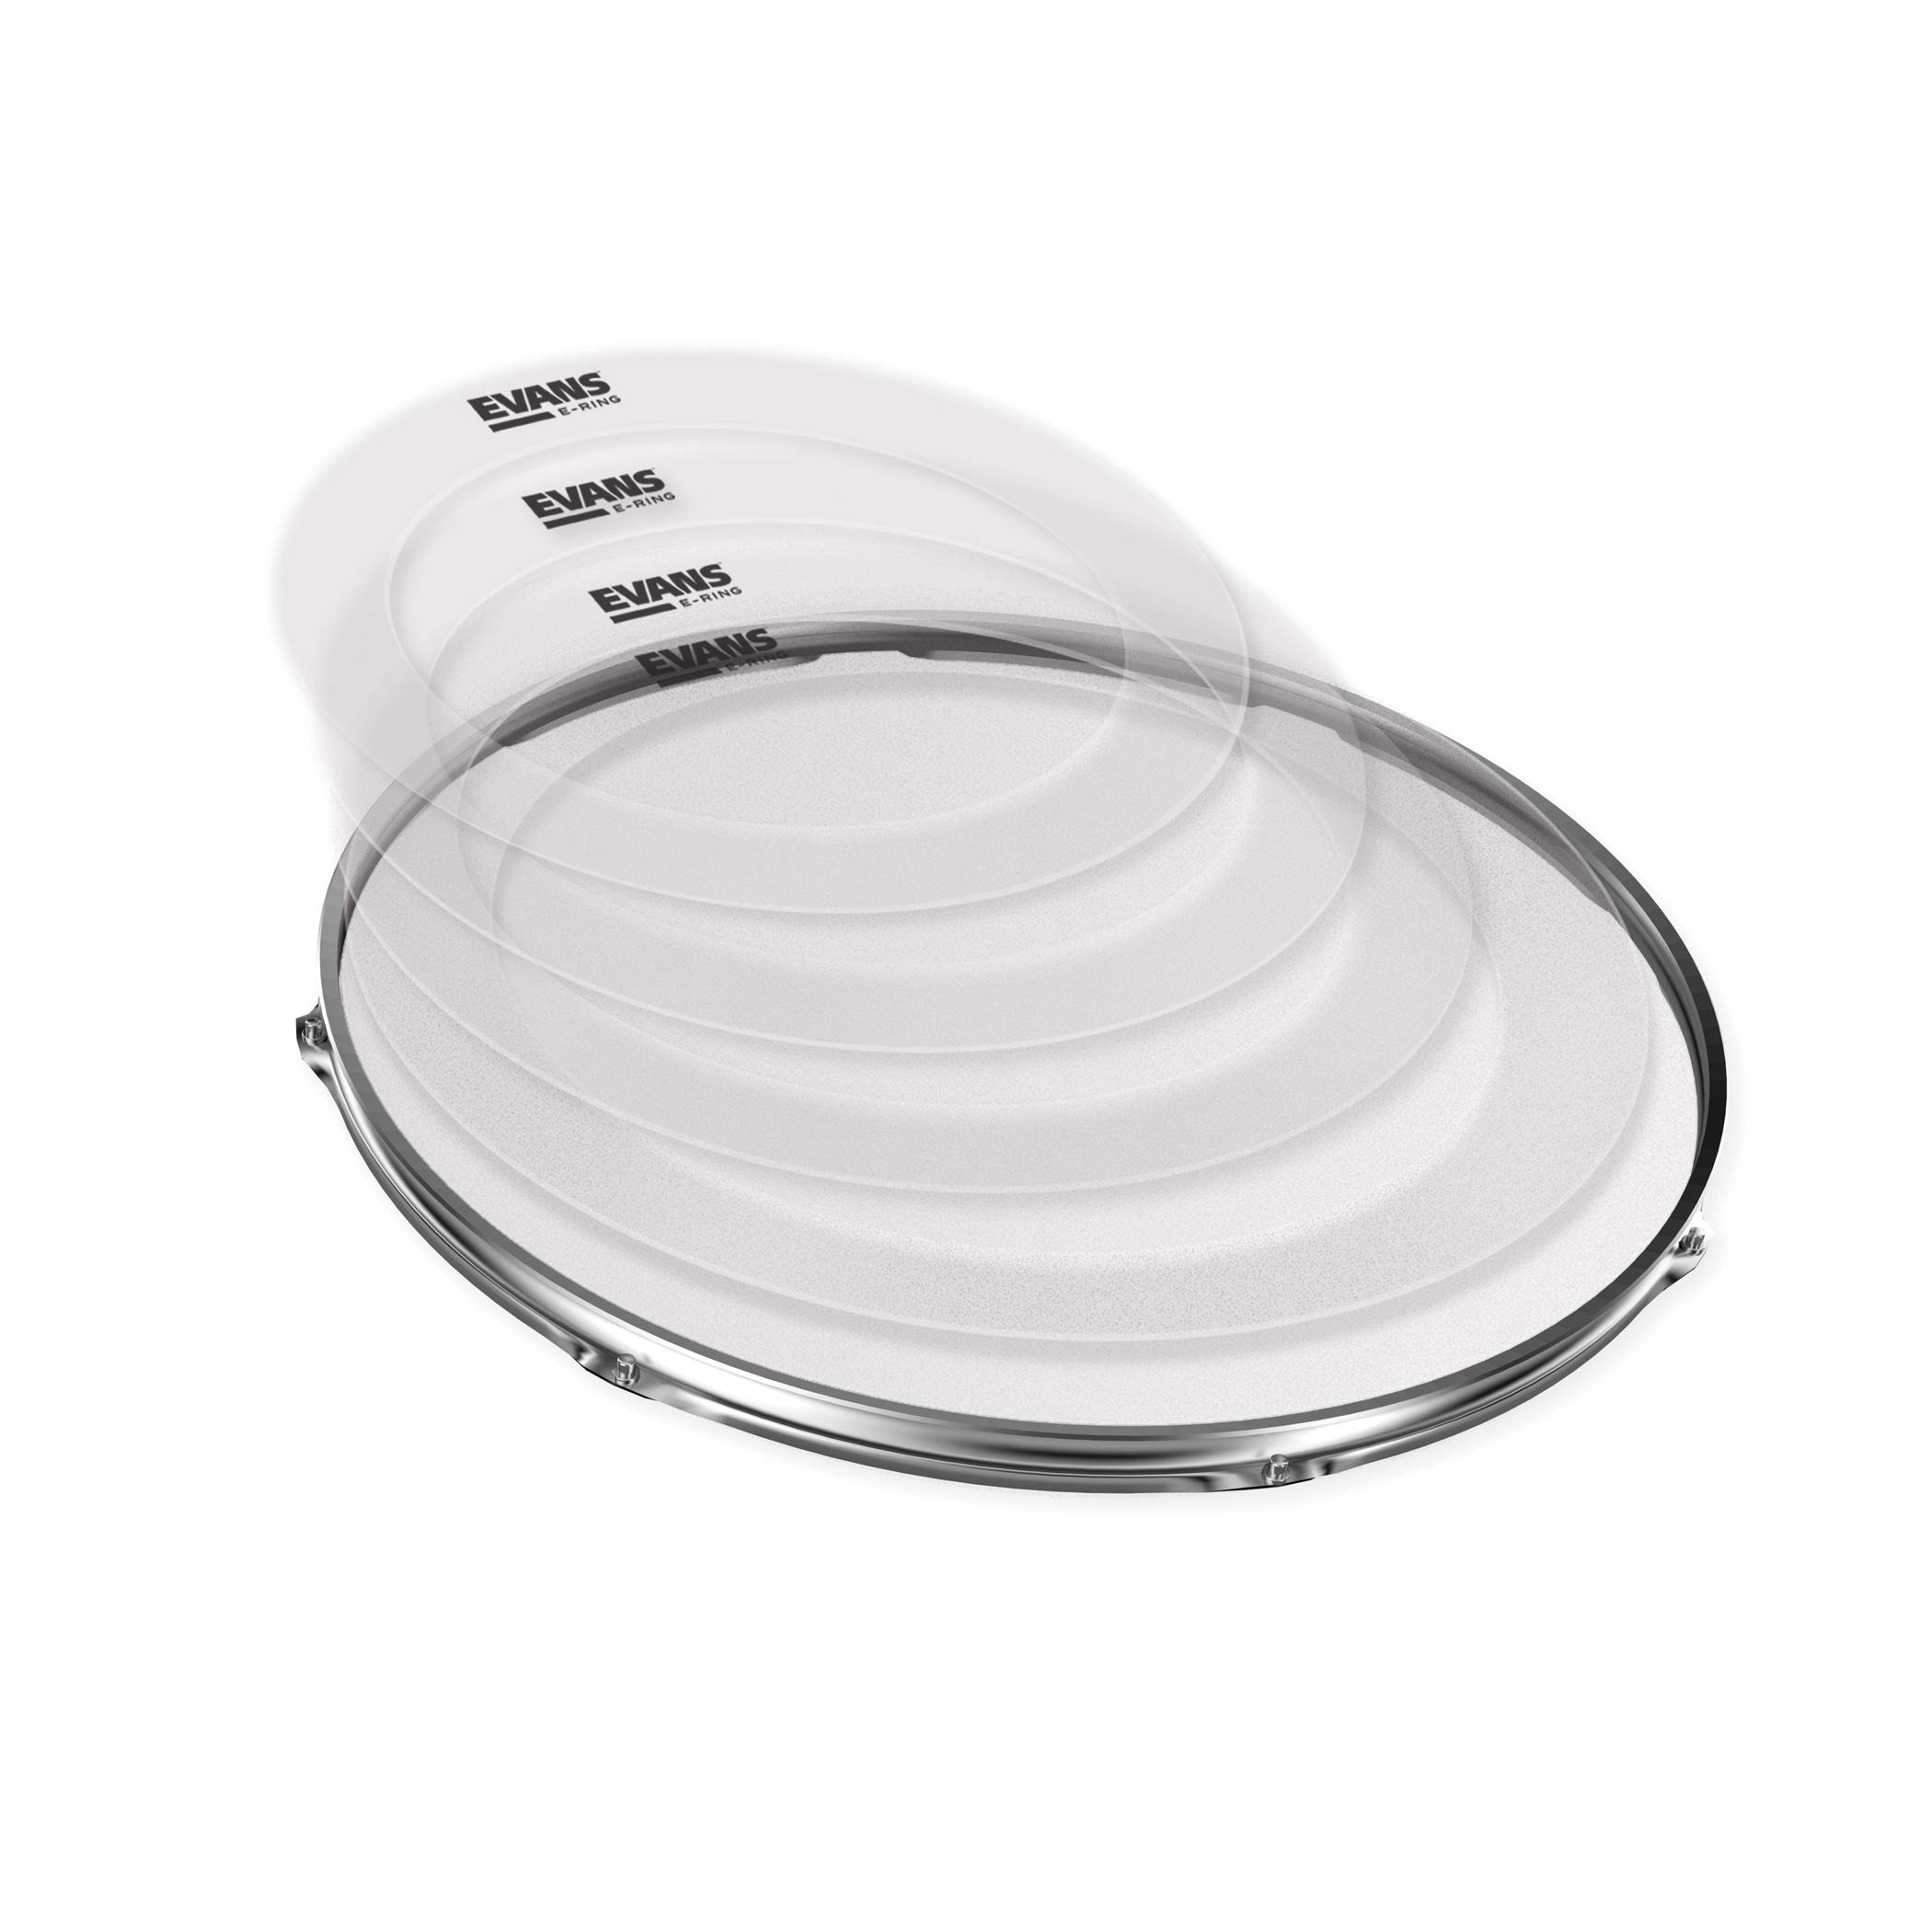 Evans E-Ring Pack, Standard product image